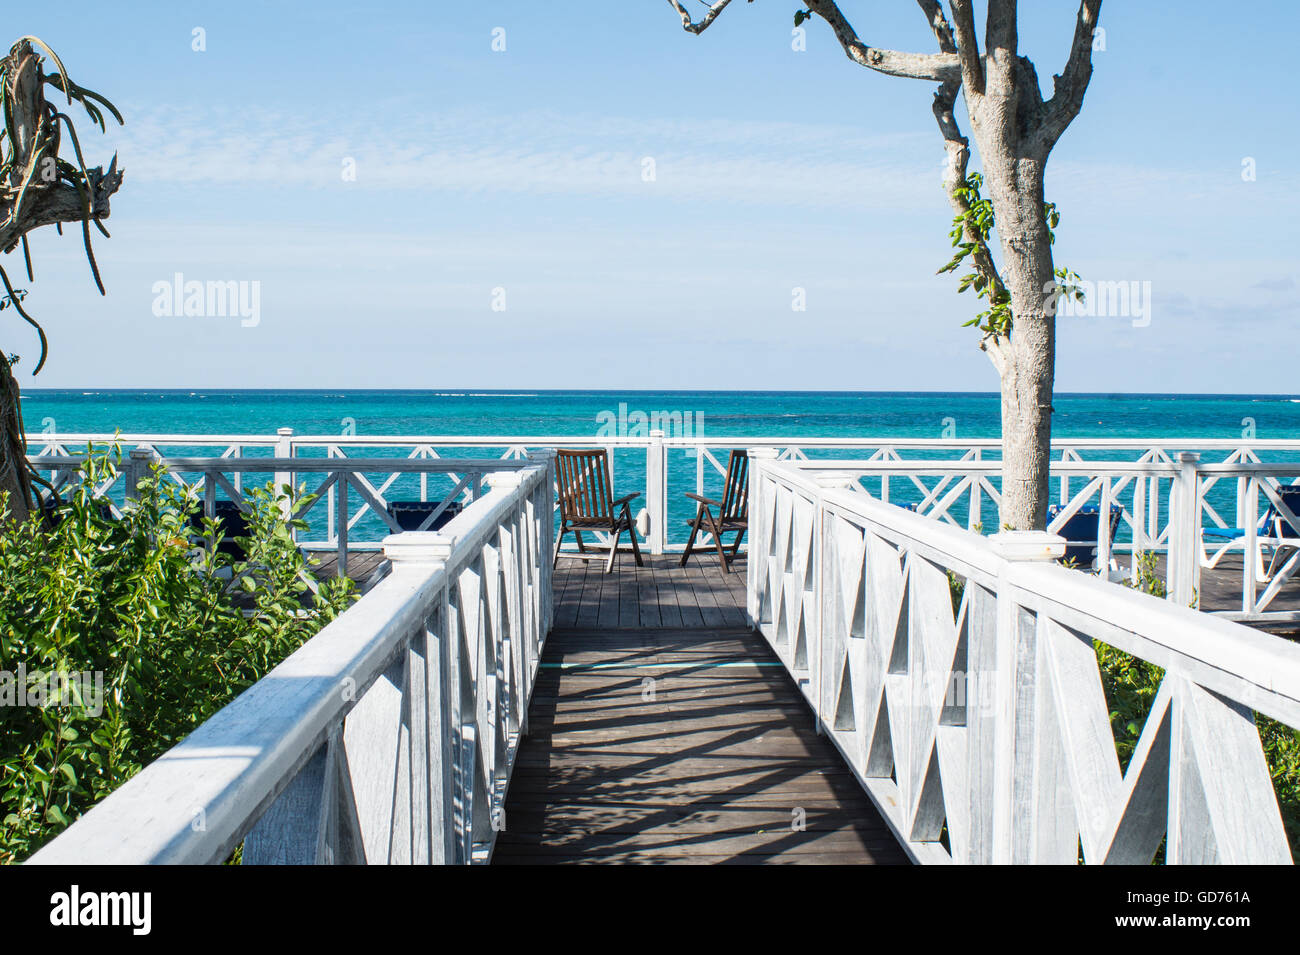 A tropical beach view. - Stock Image